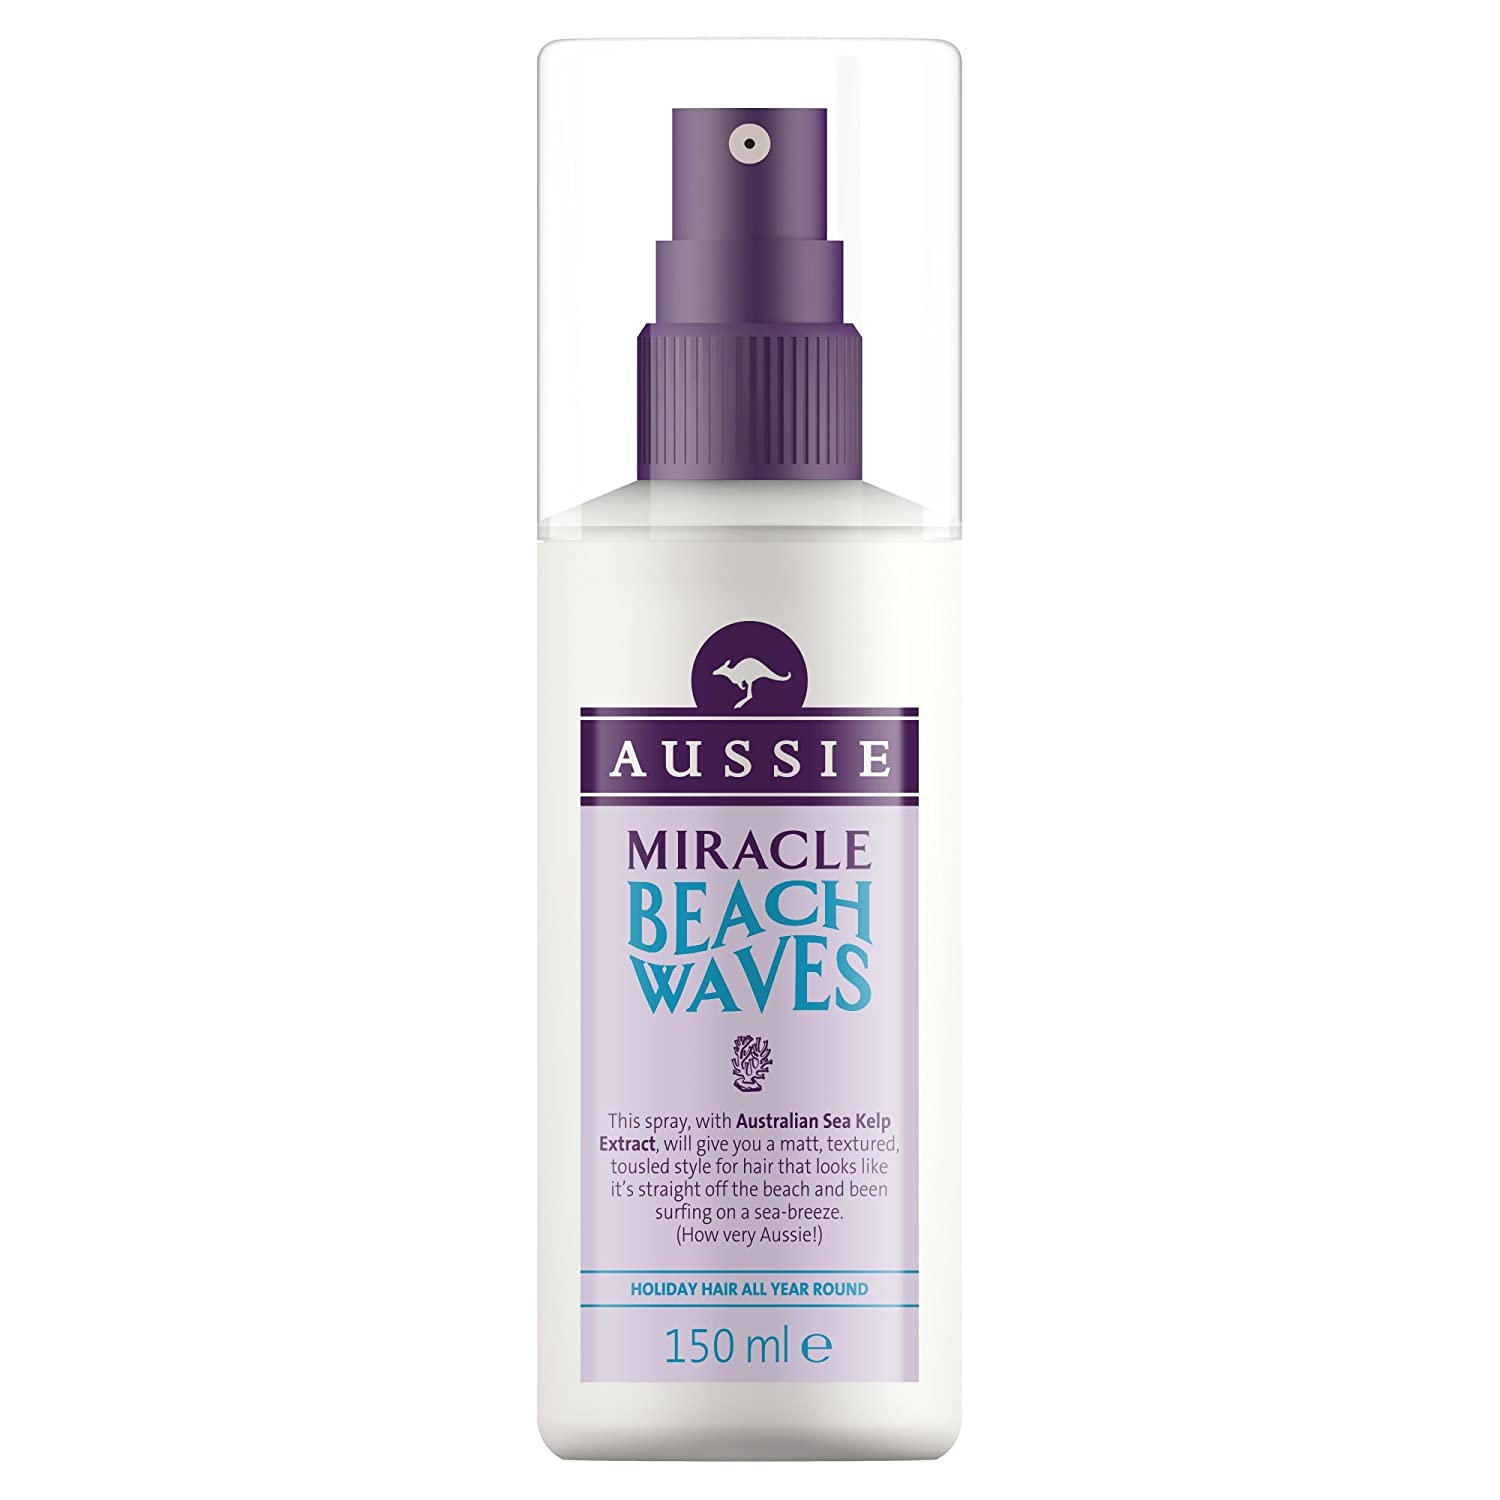 Aussie Miracle Beach Waves Spray, 150 ml Procter and Gamble 4084500104891